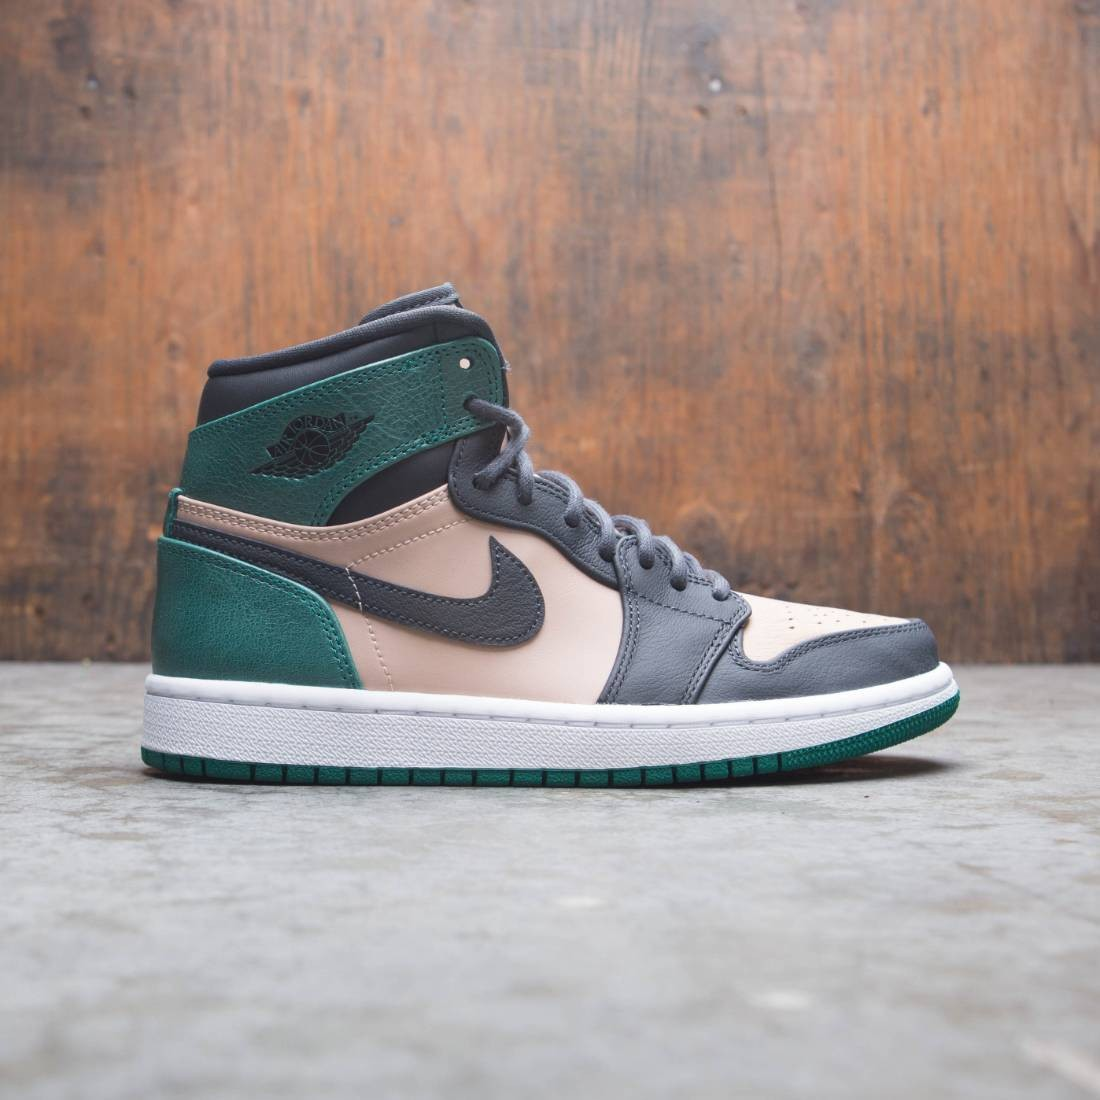 new product d3b96 7ab4e Air Jordan 1 Retro High Premium Women (bio beige / anthracite-mystic green)